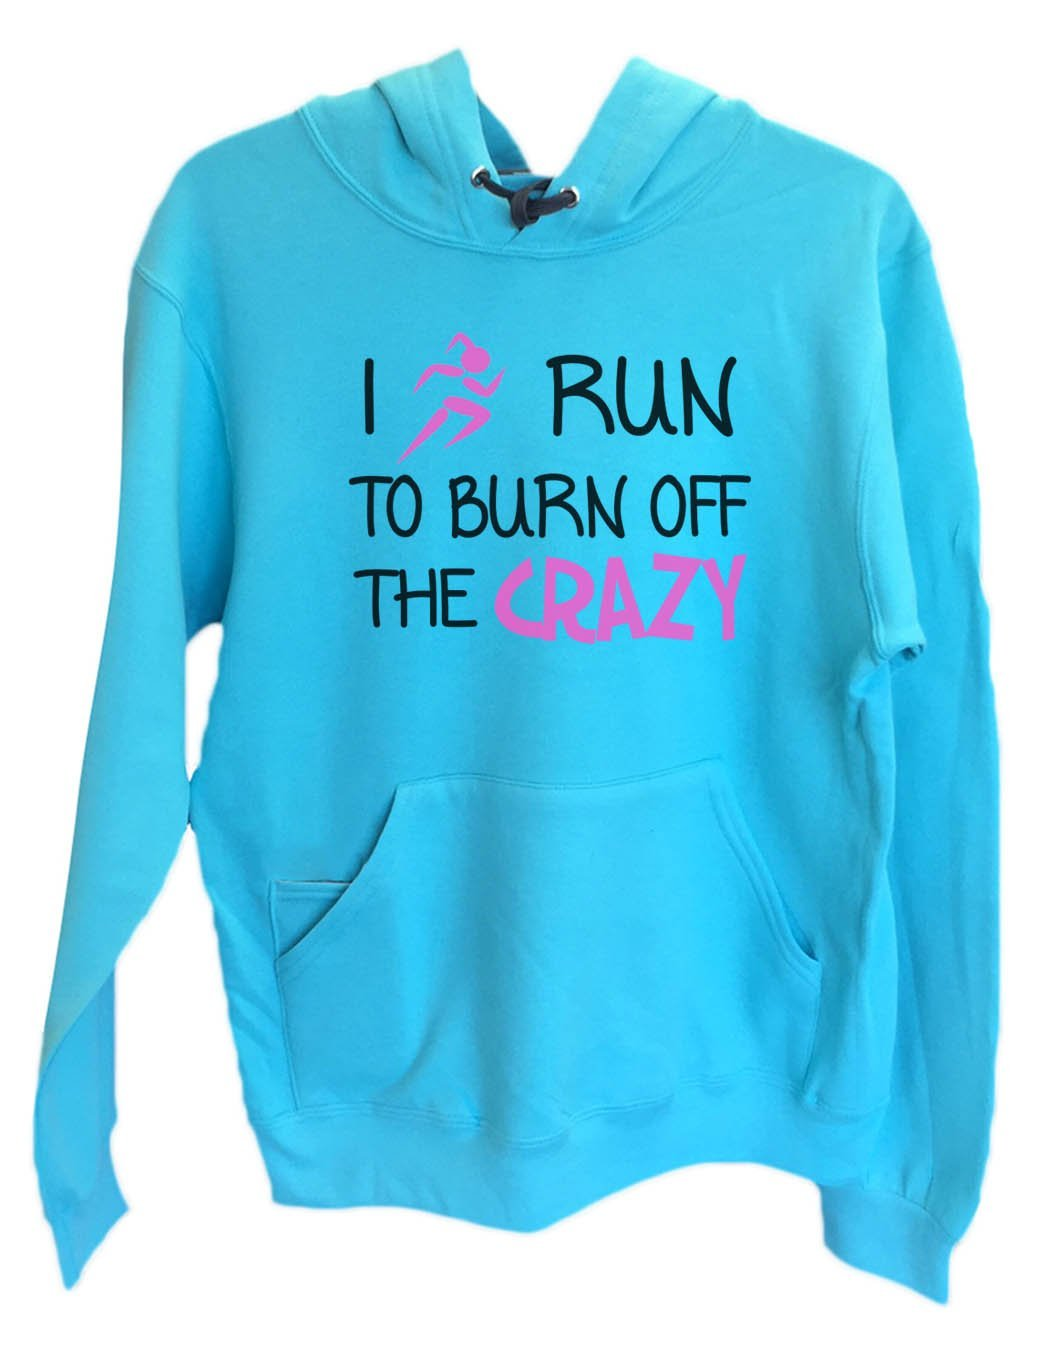 UNISEX HOODIE - I run to burn off the crazy - FUNNY MENS AND WOMENS HOODED SWEATSHIRTS - 532 Funny Shirt Small / Turquoise